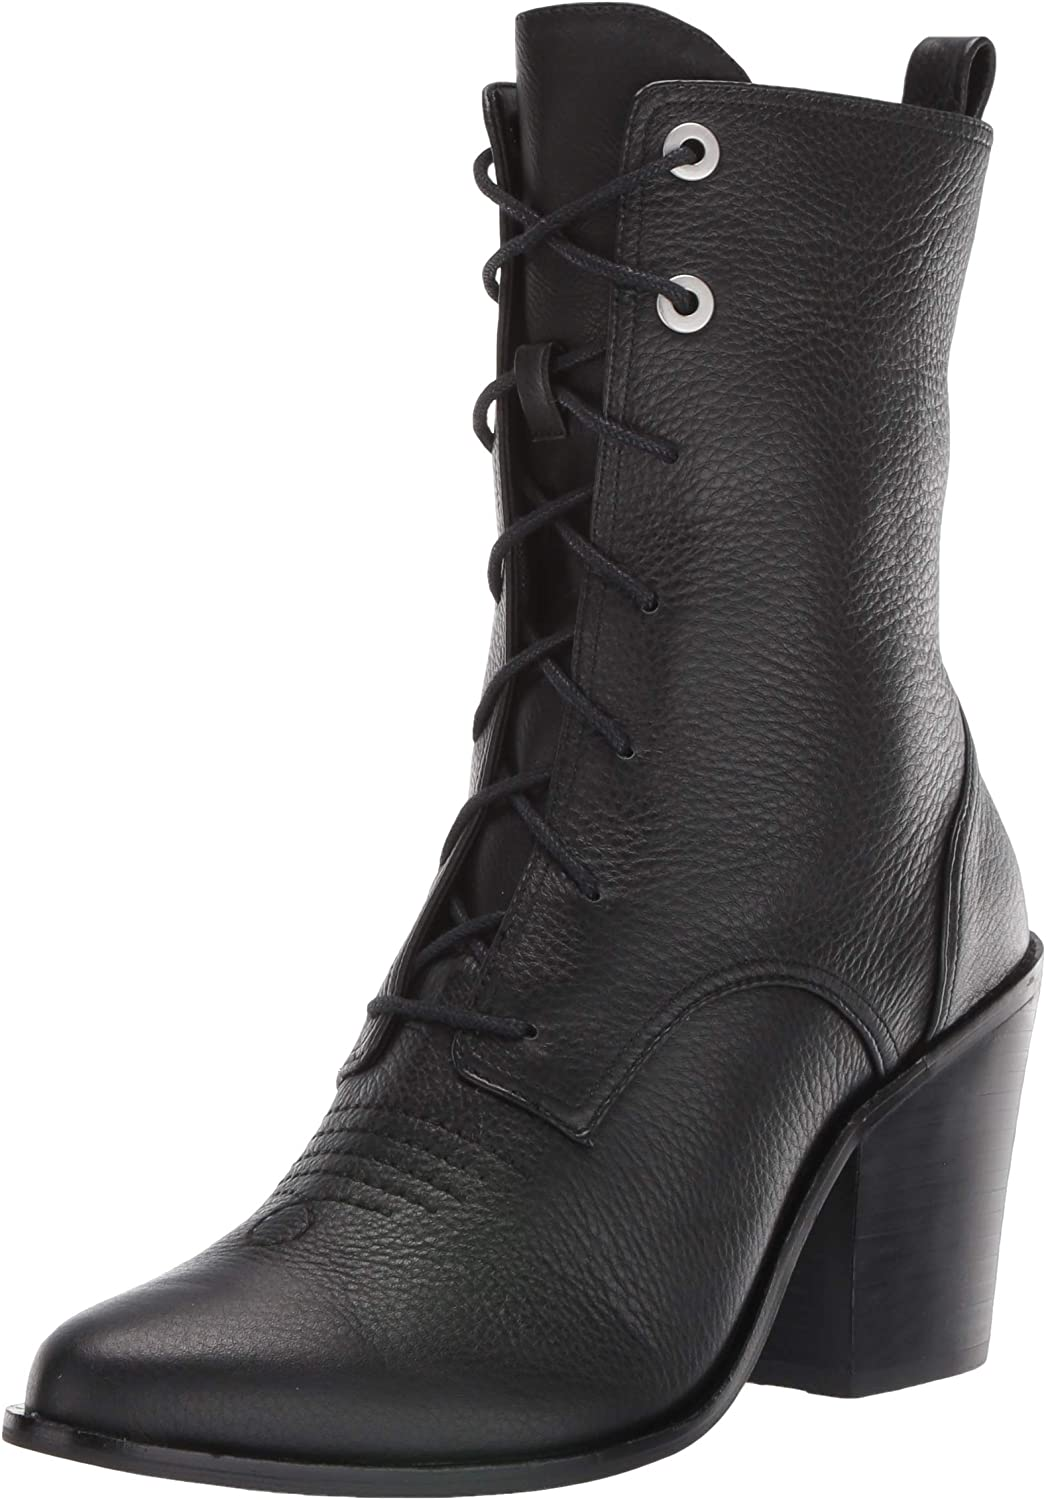 Chinese Laundry Women's Sabrina Mid Calf Boot